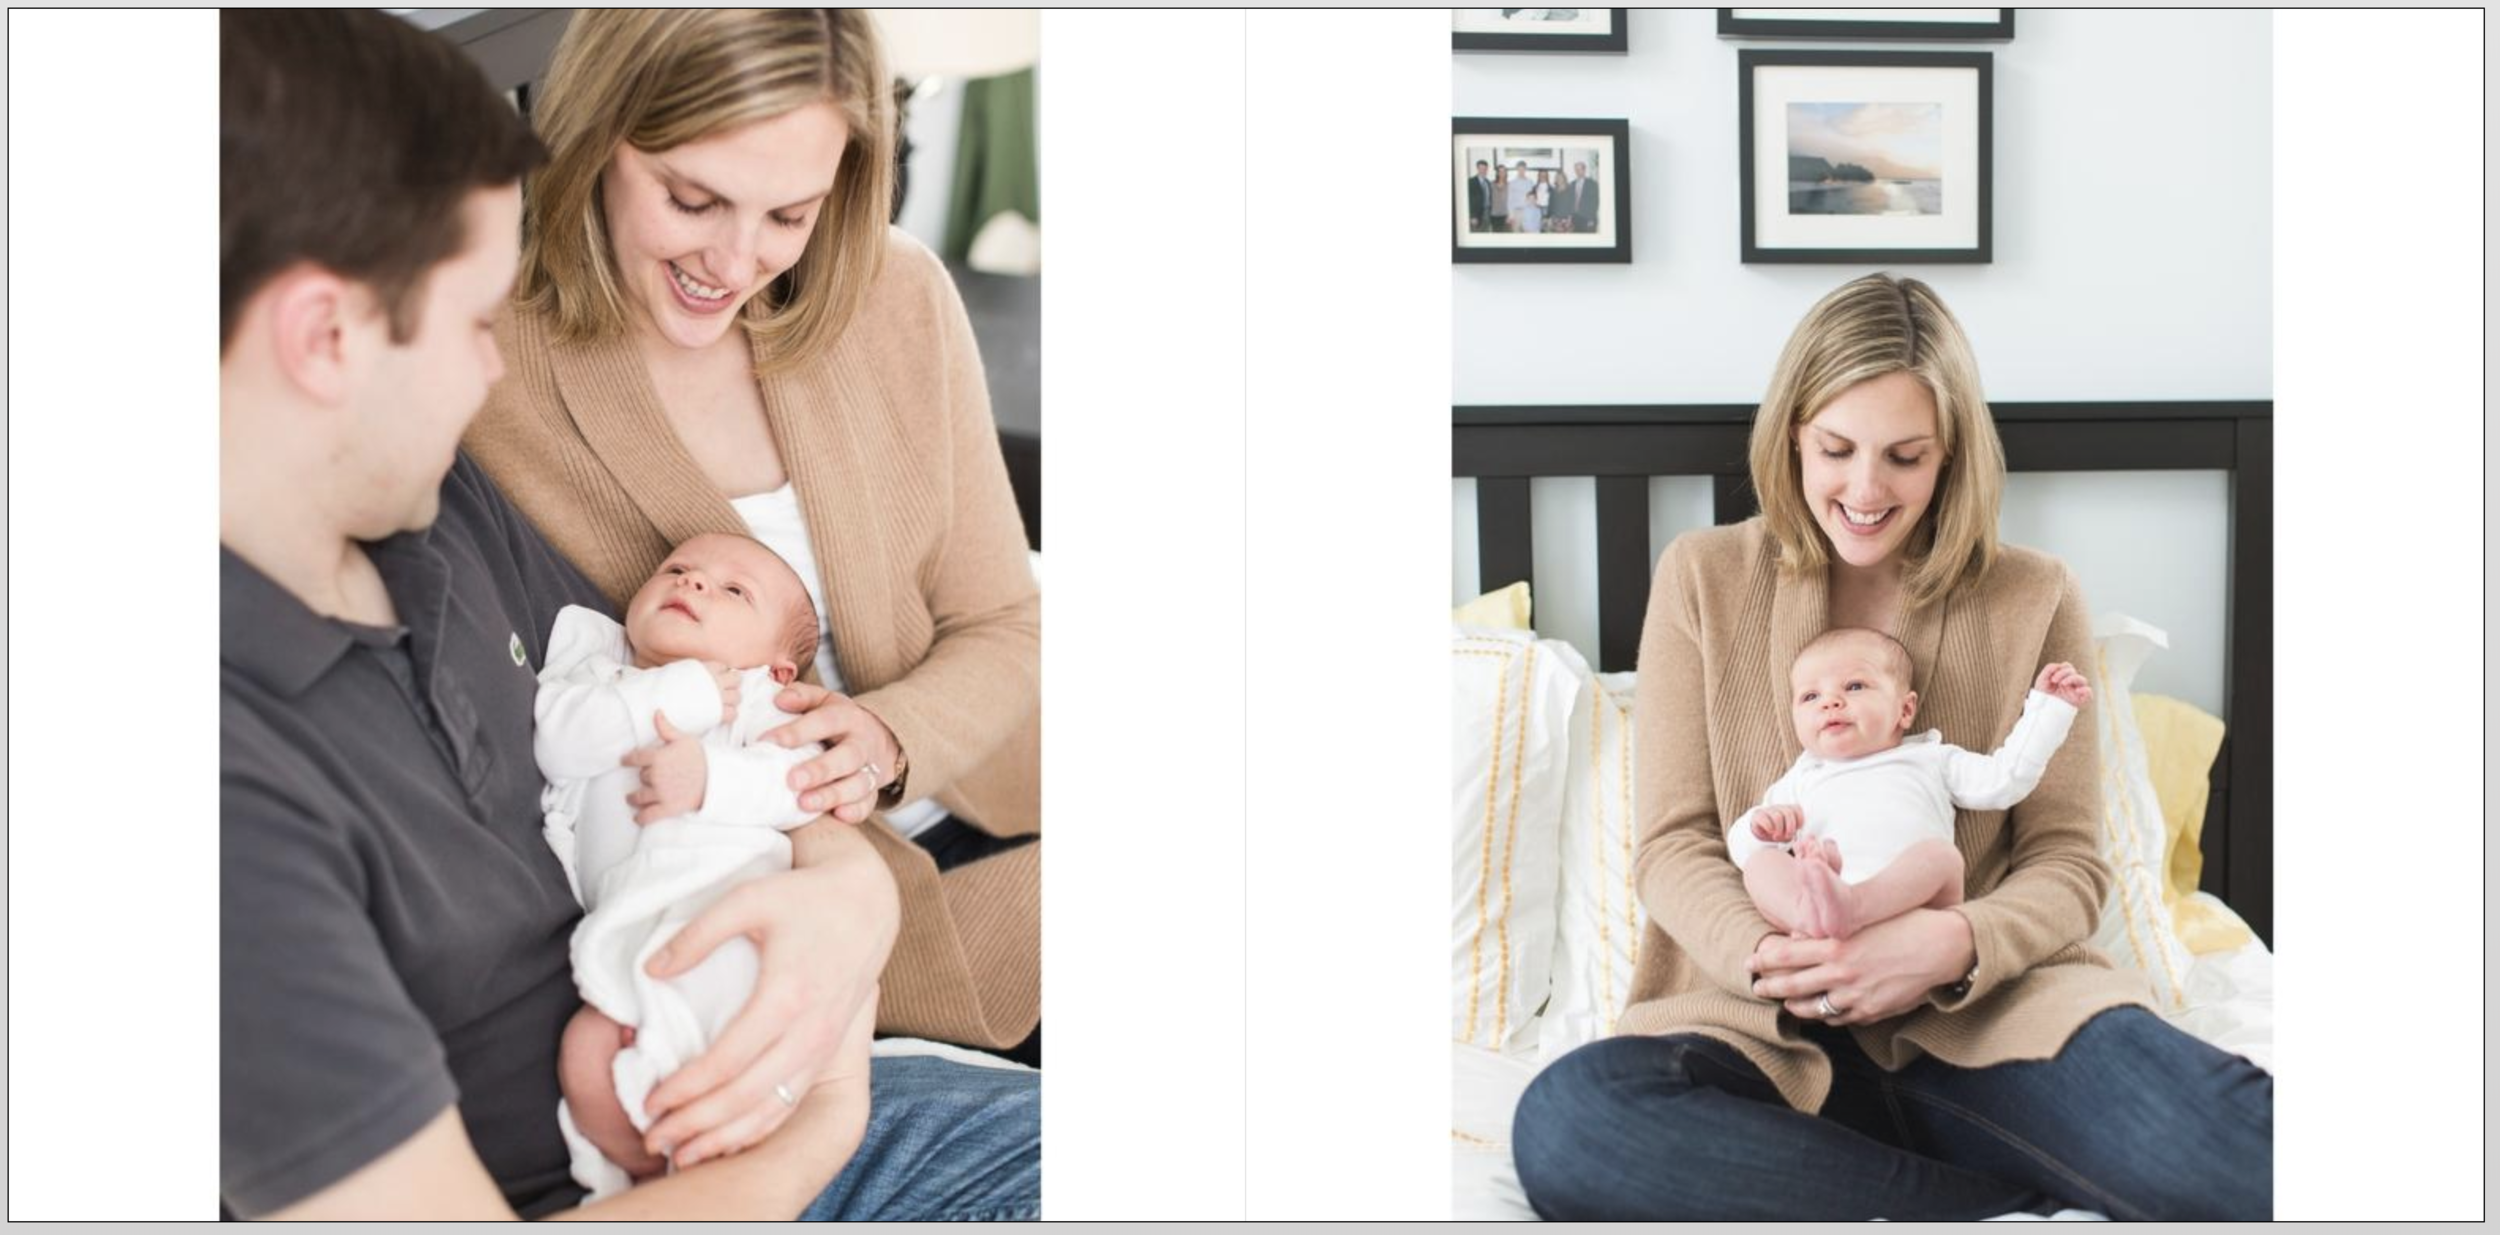 Example of 1 spread (2 pages), with one image on each page